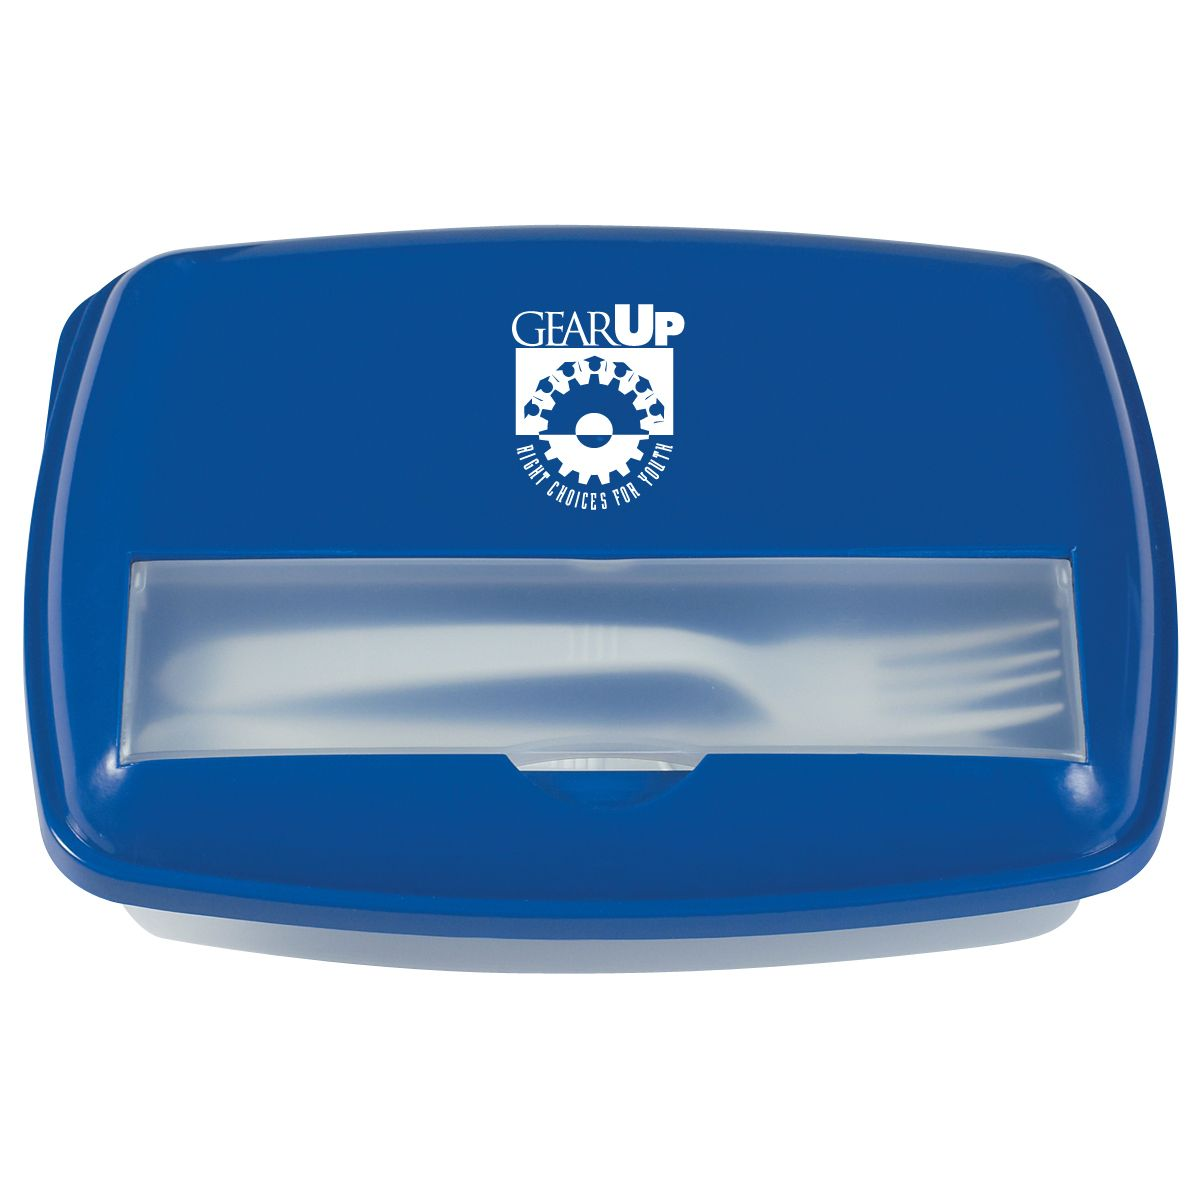 GEARUP 3-Section Lunch Container. Includes Plastic Knife And Fork In Secure. Lid Compartment. Microwave And Dishwasher Safe. Meets FDA Requirements.   More ideas at http://proformagearupideas.com/